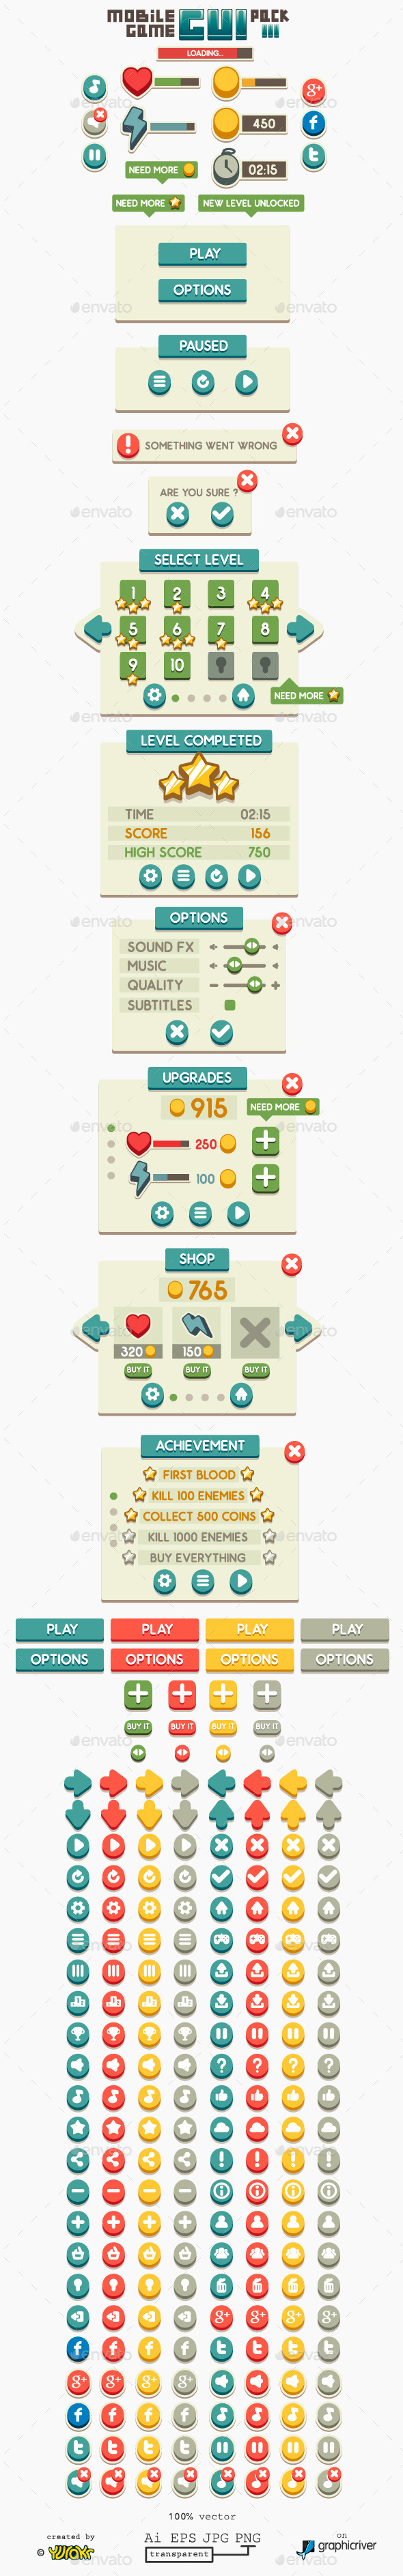 GraphicRiver Mobile Game GUI Pack 3 11444877